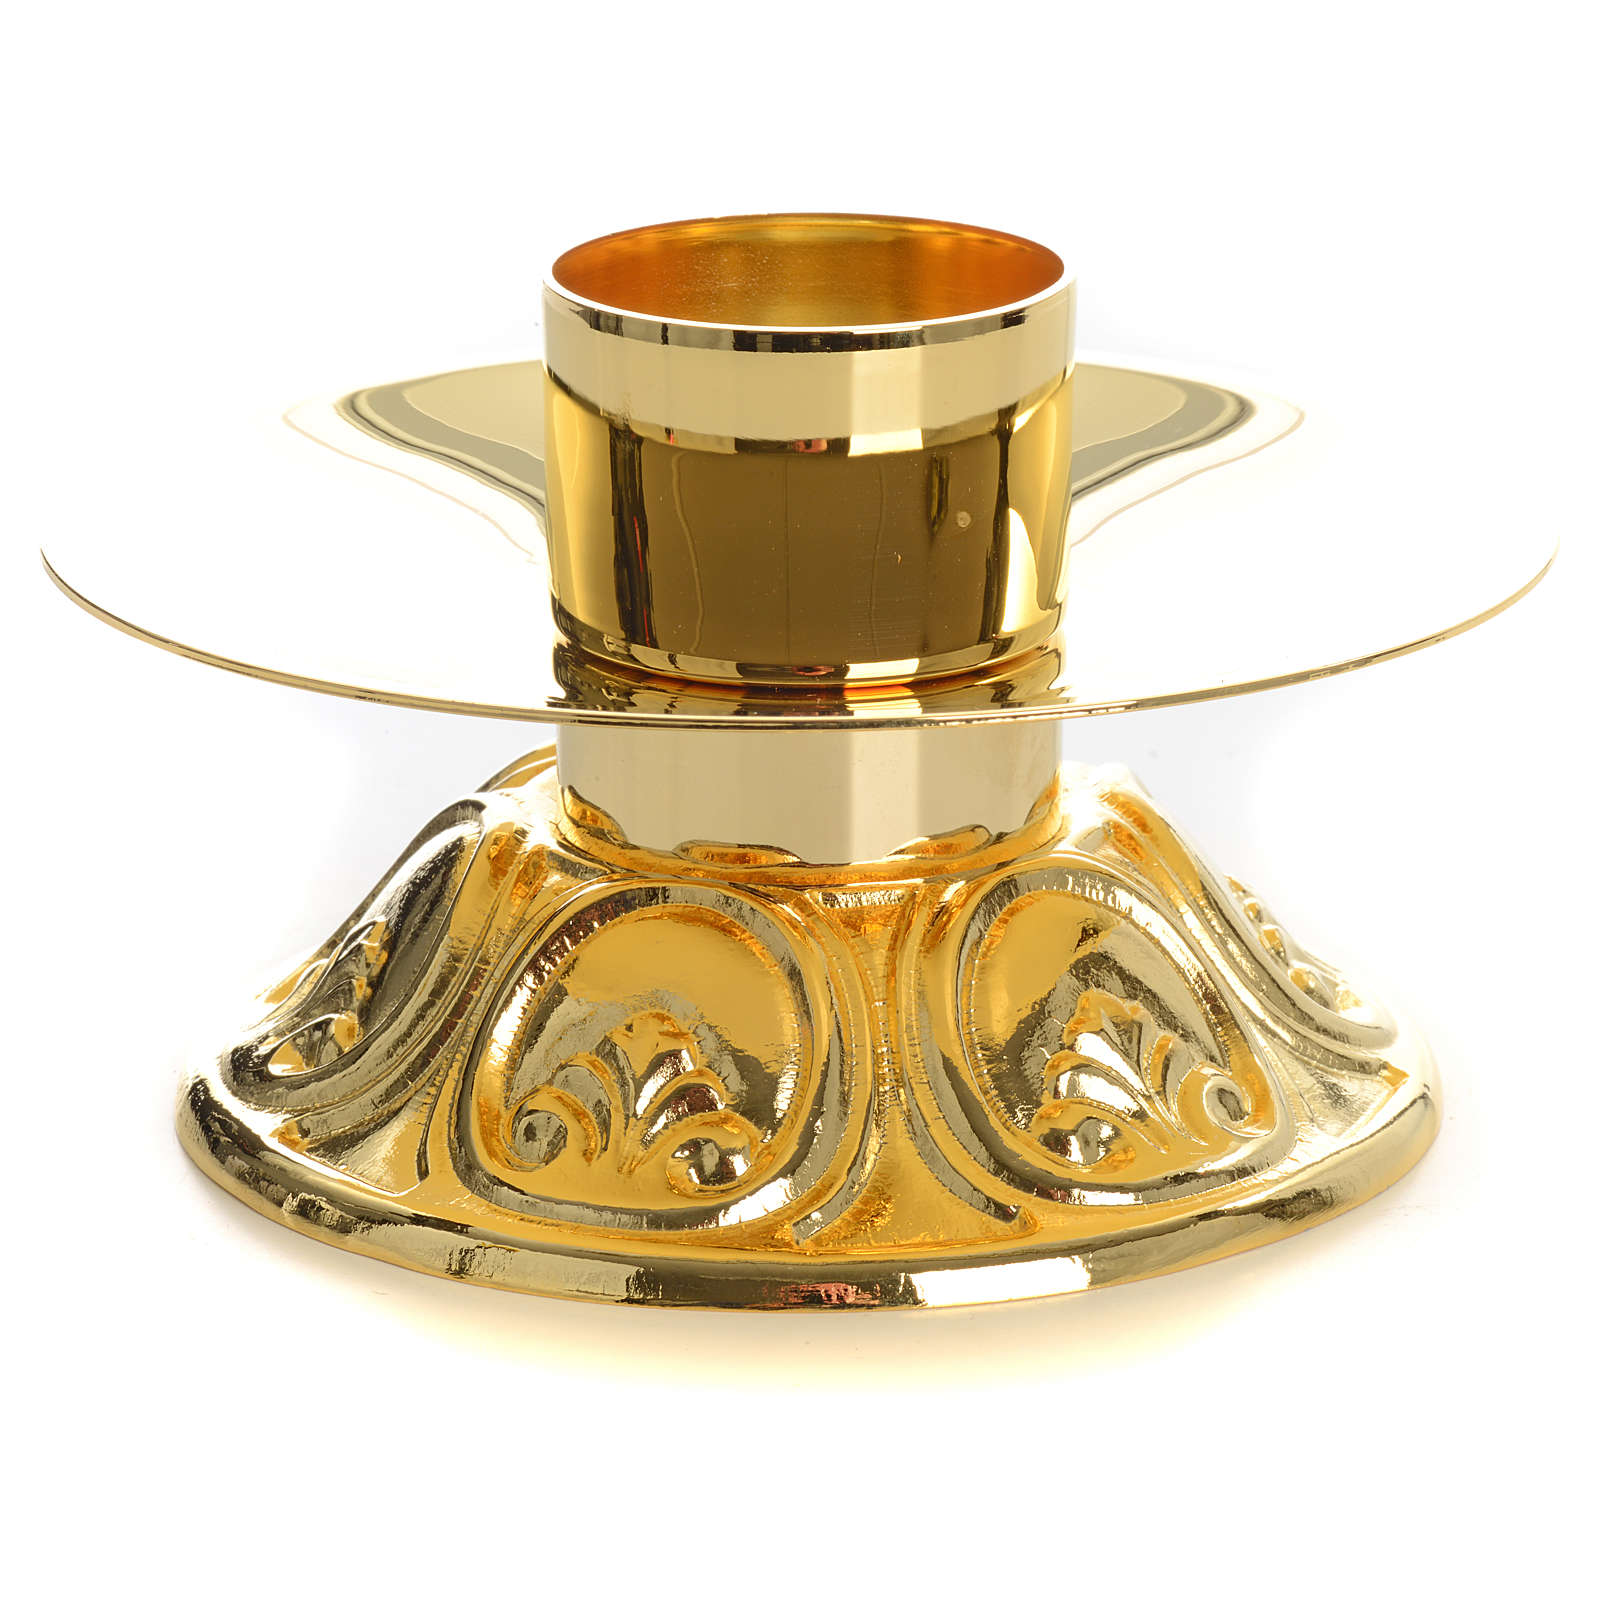 Candlestick in gold-plated brass 4